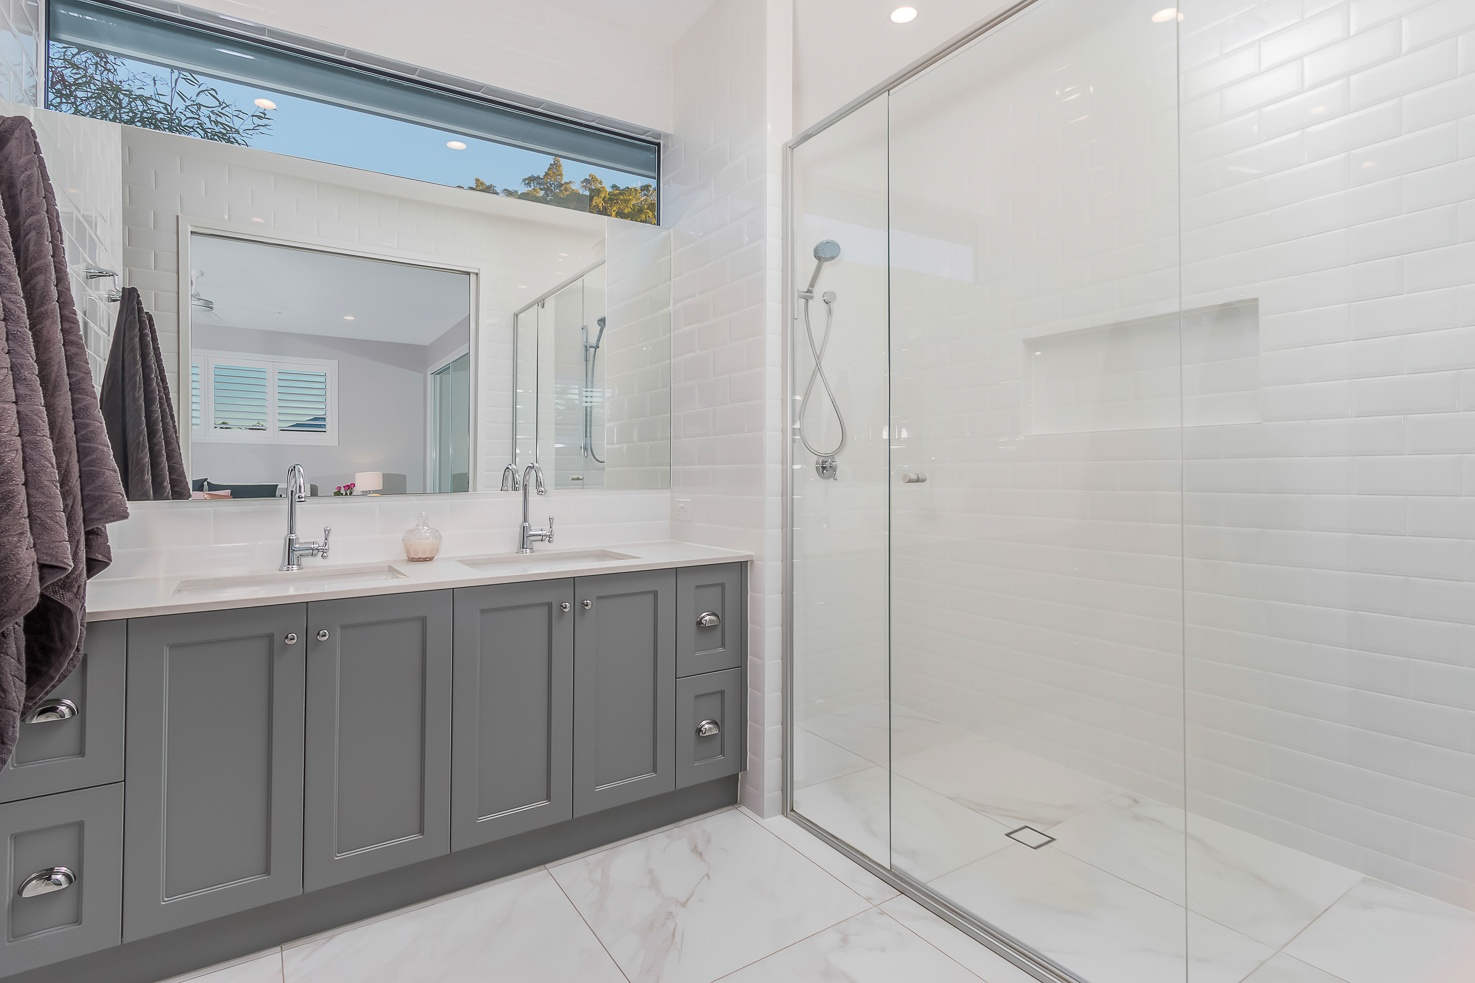 Hamptons style bathroom with shower and vanity by Kalka